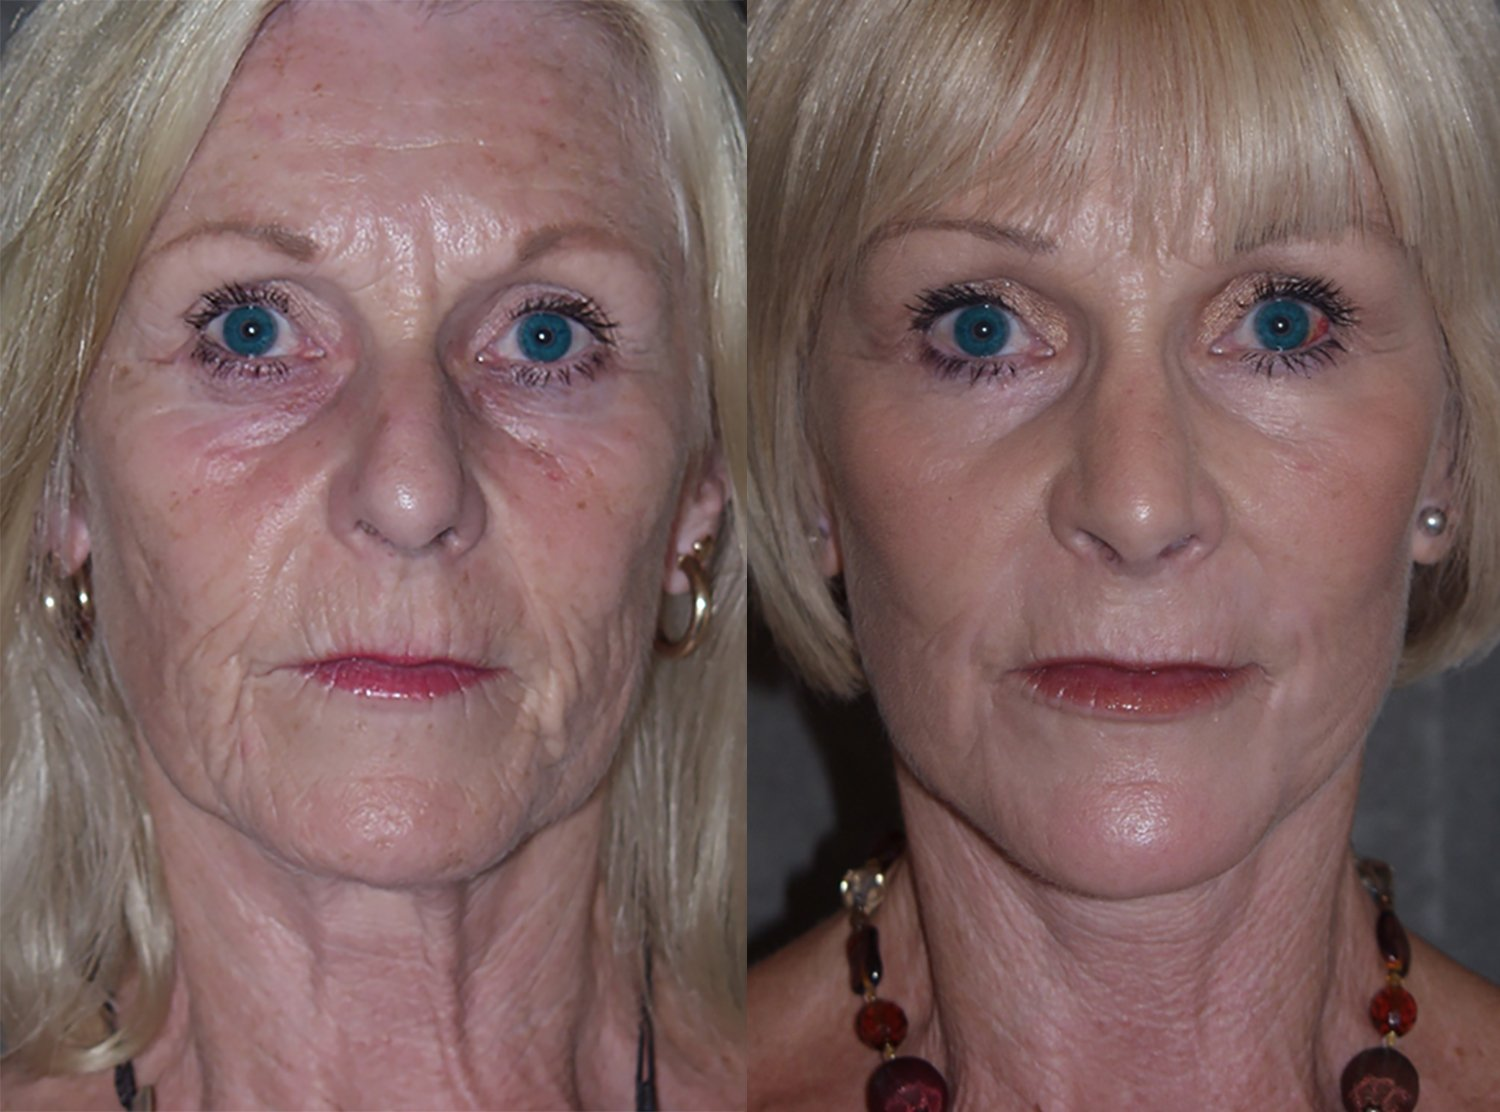 60-year-old facelift upper & lower eyelids, chin implant, rhinoplasty, peel lower eyelids & perioral, 4 months